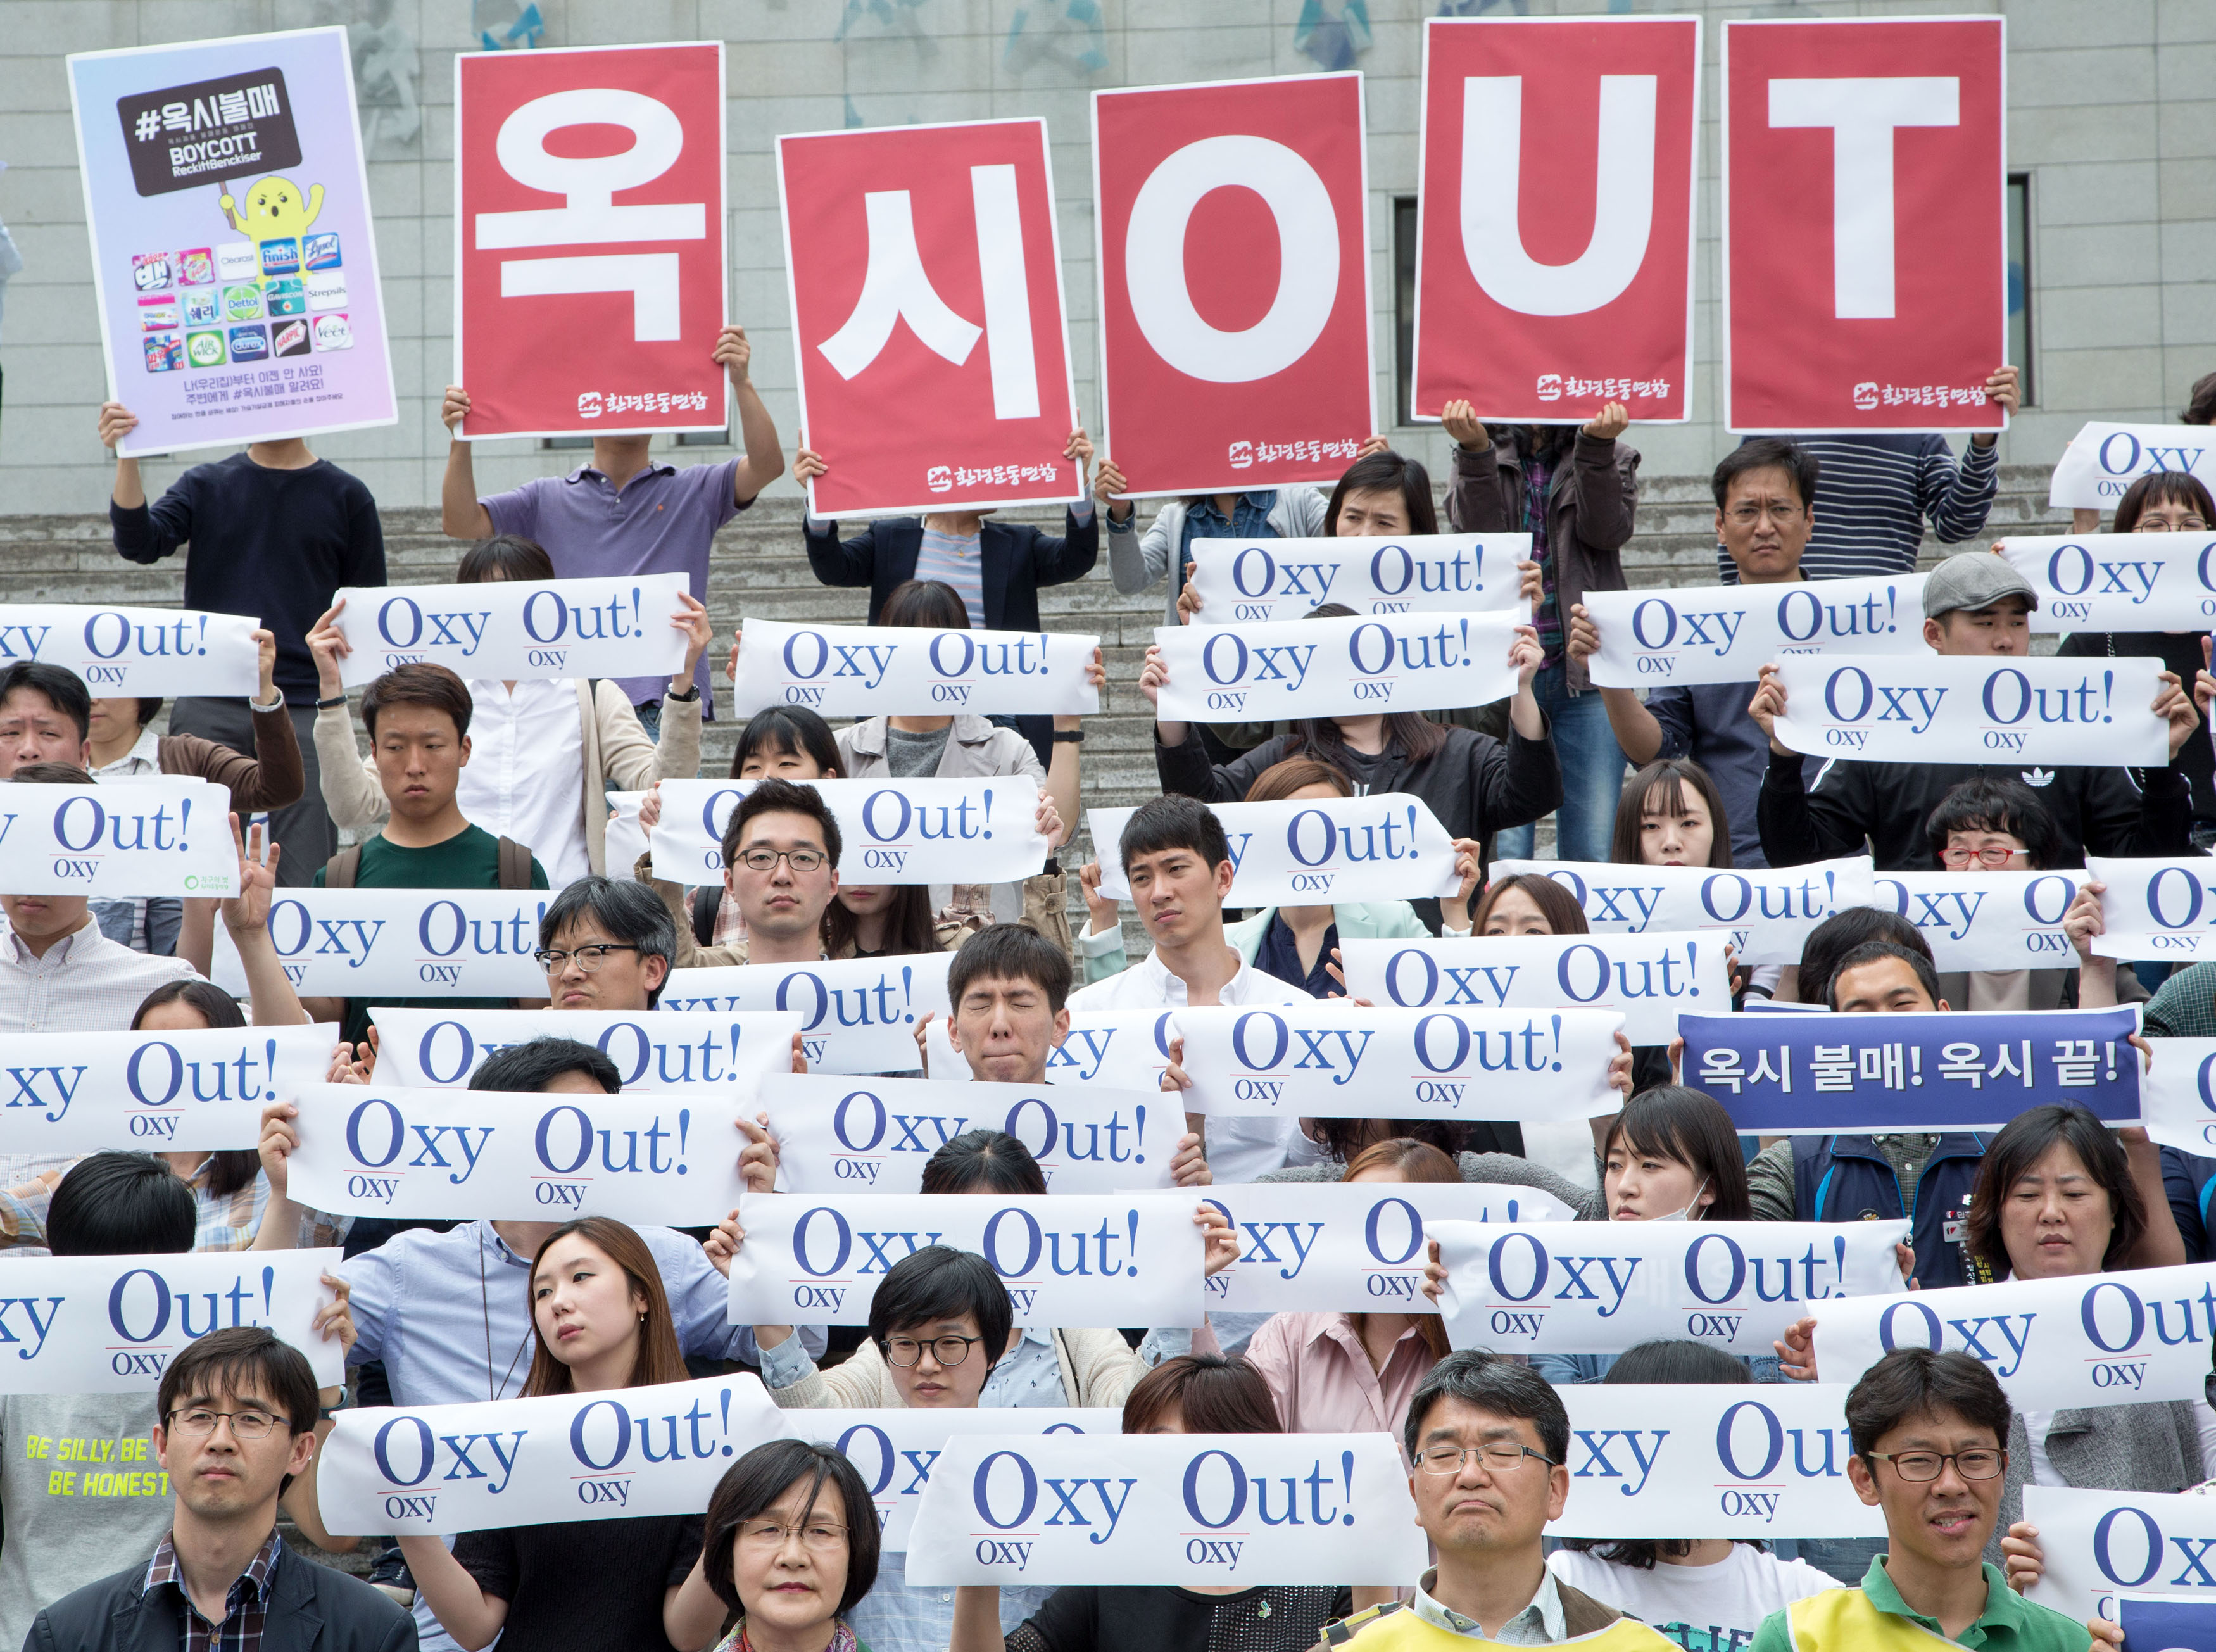 South Korean protesters who claim that a sterilizing hygiene product made by Reckitt Benckiser has led to deaths in South Korea demonstrate n in Seoul on May 9, 2016